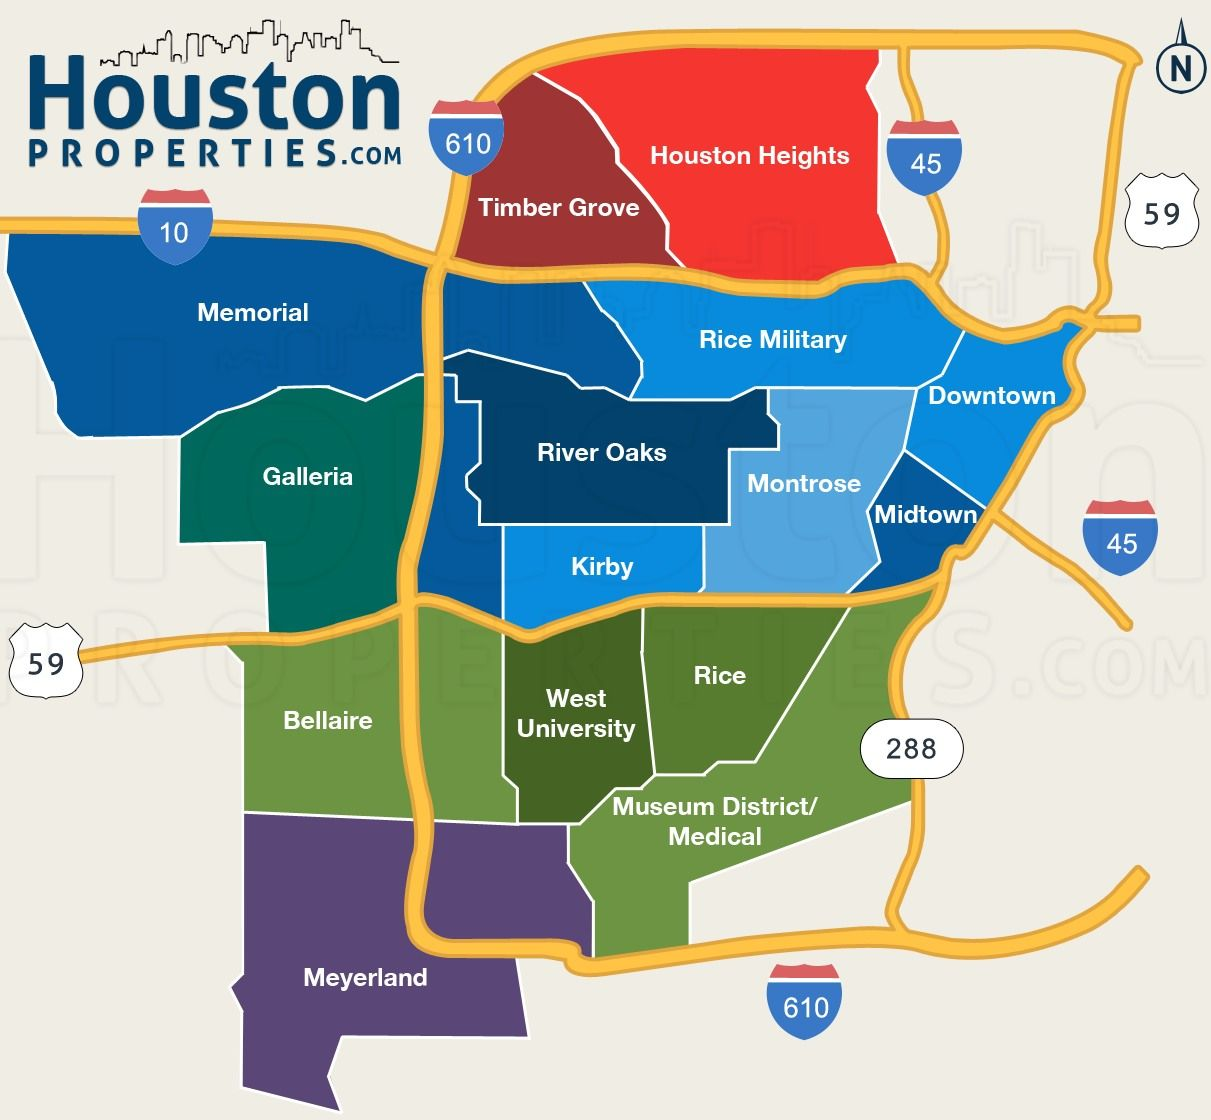 houston homes for sale Click on a Houston neighborhood below to